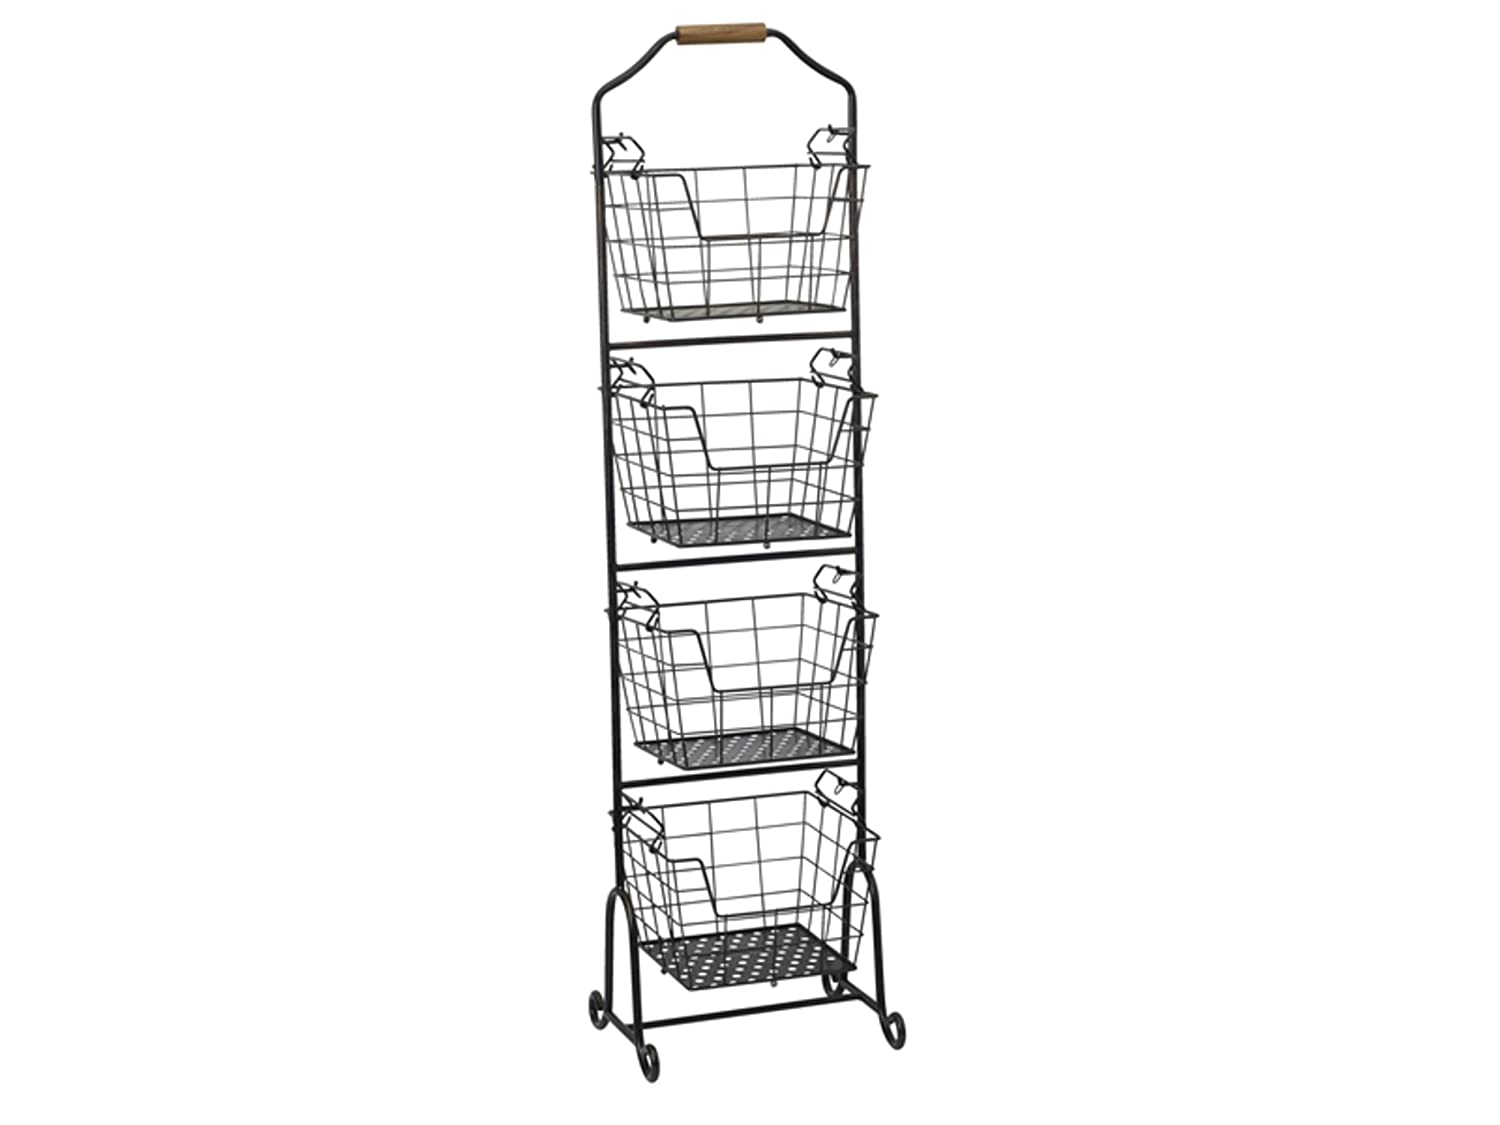 Gourmet Basics by Mikasa 5228872 Ferme 4-Tier Metal Floor Standing Fruit/Home Storage Market Basket Large Antique Black